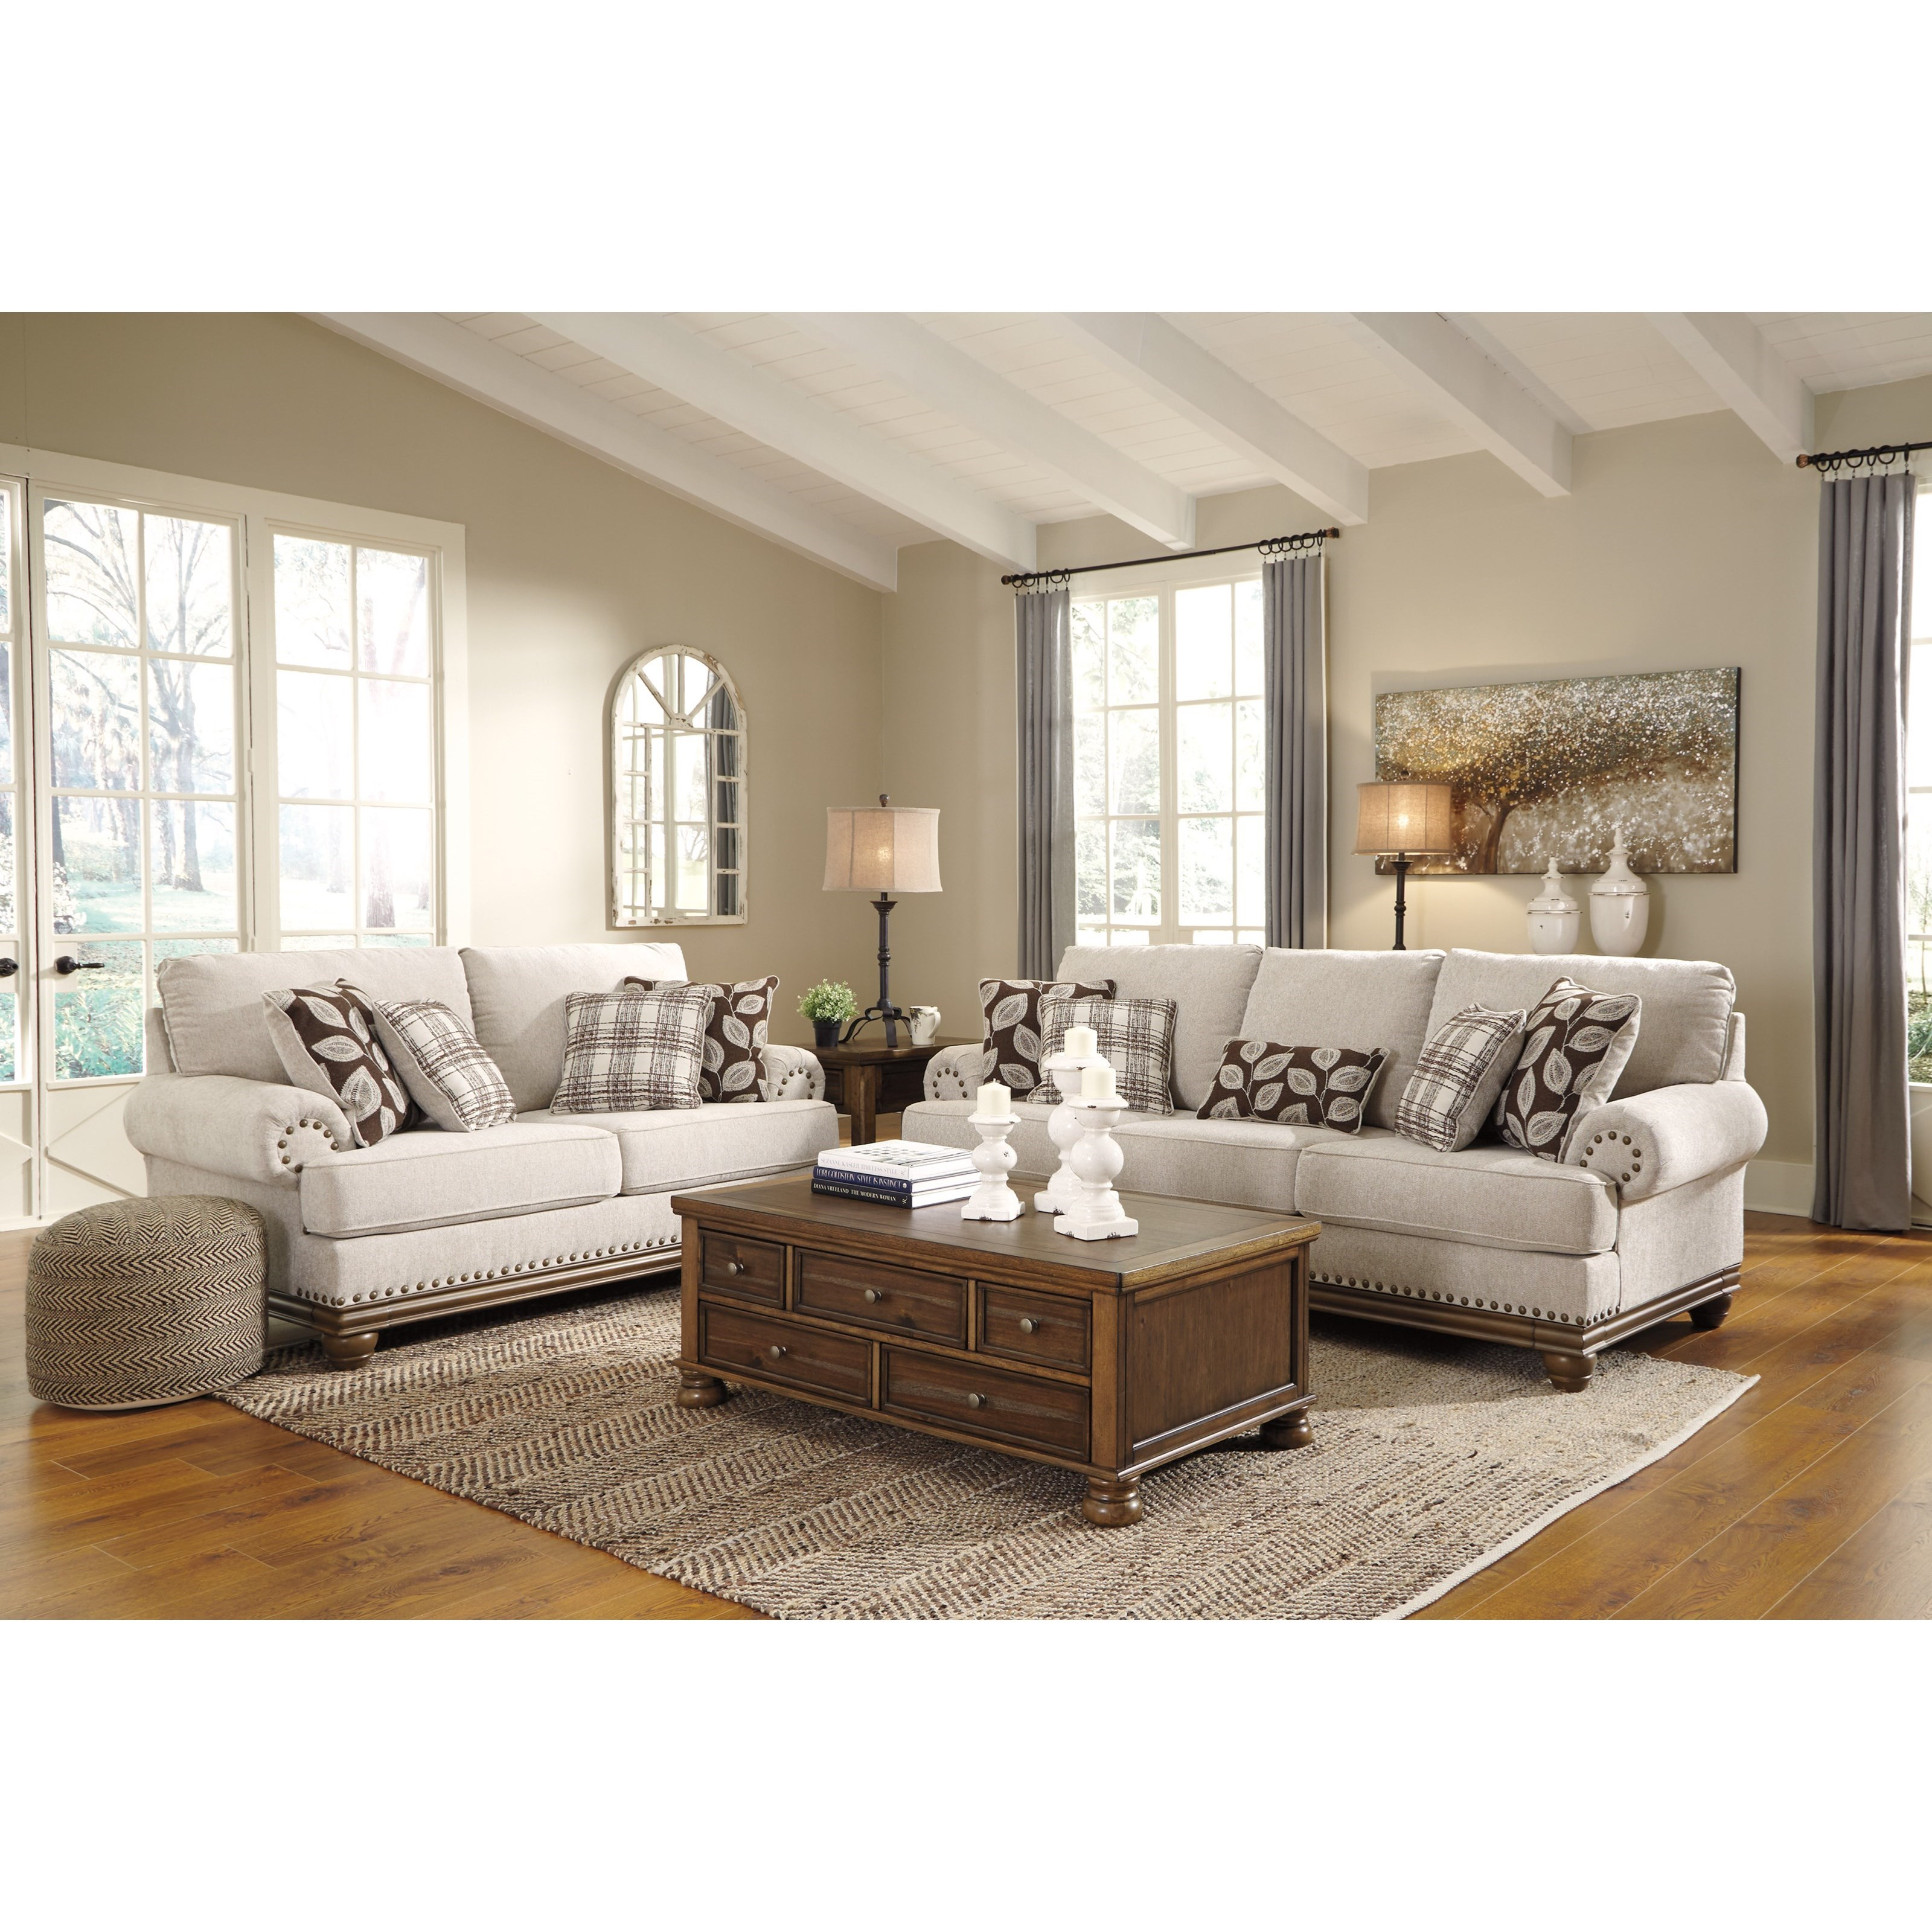 Ashley Design: Signature Design By Ashley Harleson Transitional Sofa With